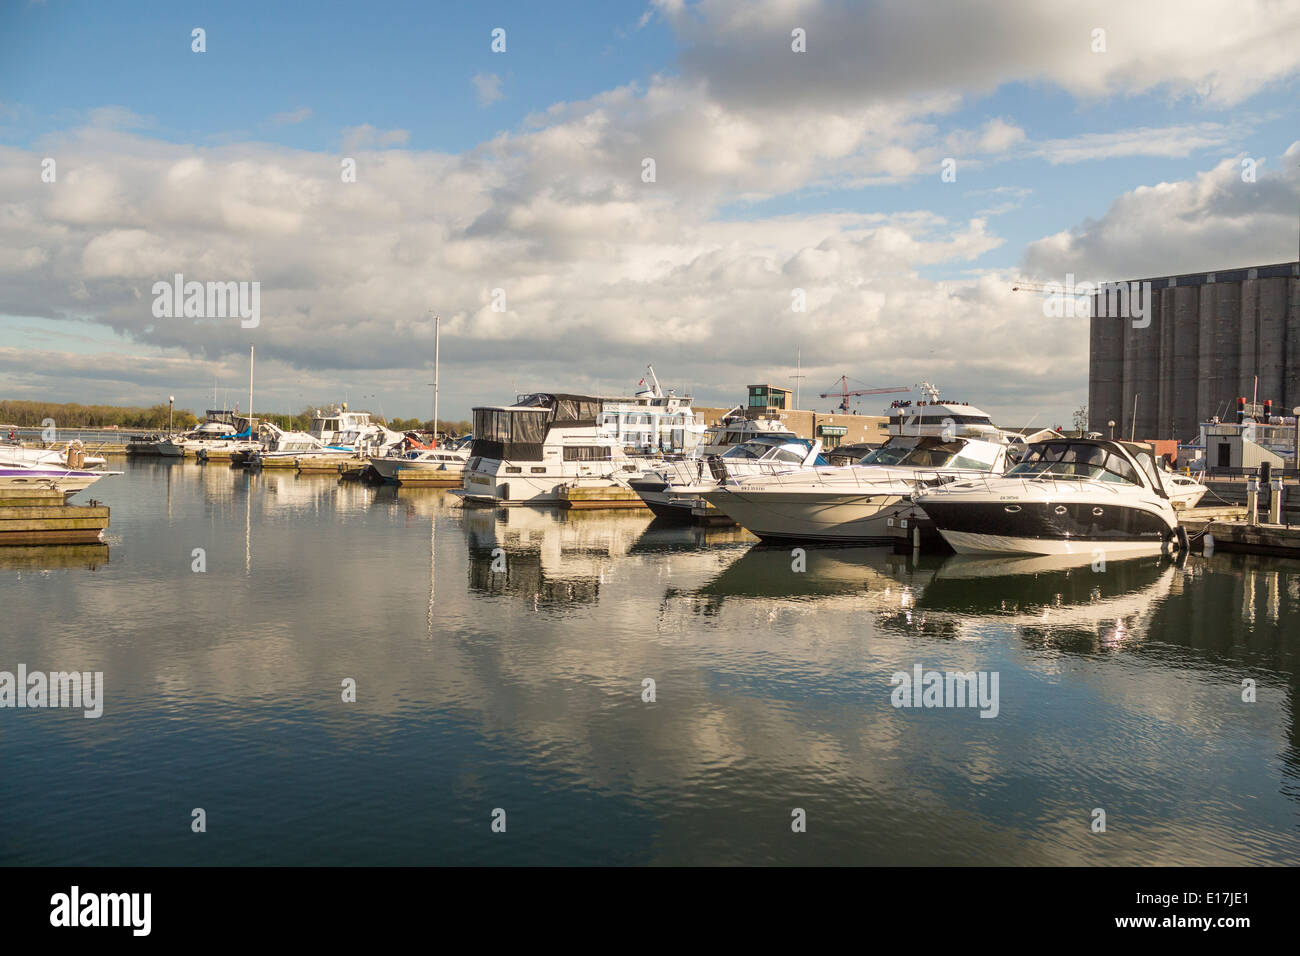 boats-moored-on-lake-ontario-in-toronto-